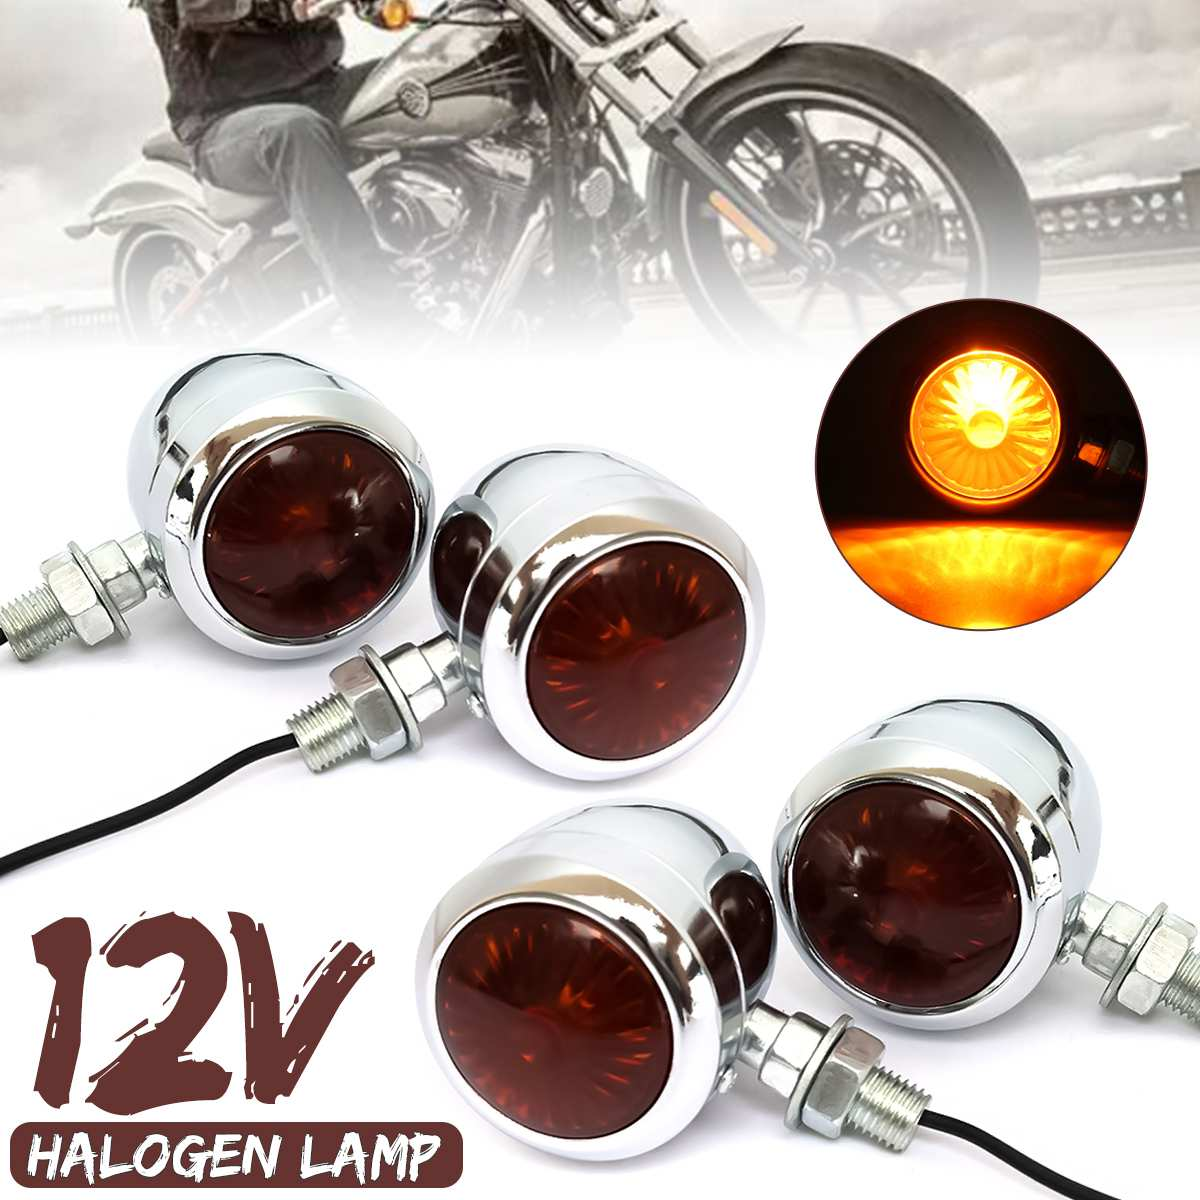 2 4Pcs 12V Retro Metal Chrome Motorcycle Turn Signal Indicator Halogen Light Bulb Lamp Vintage Amber Universal For Harley